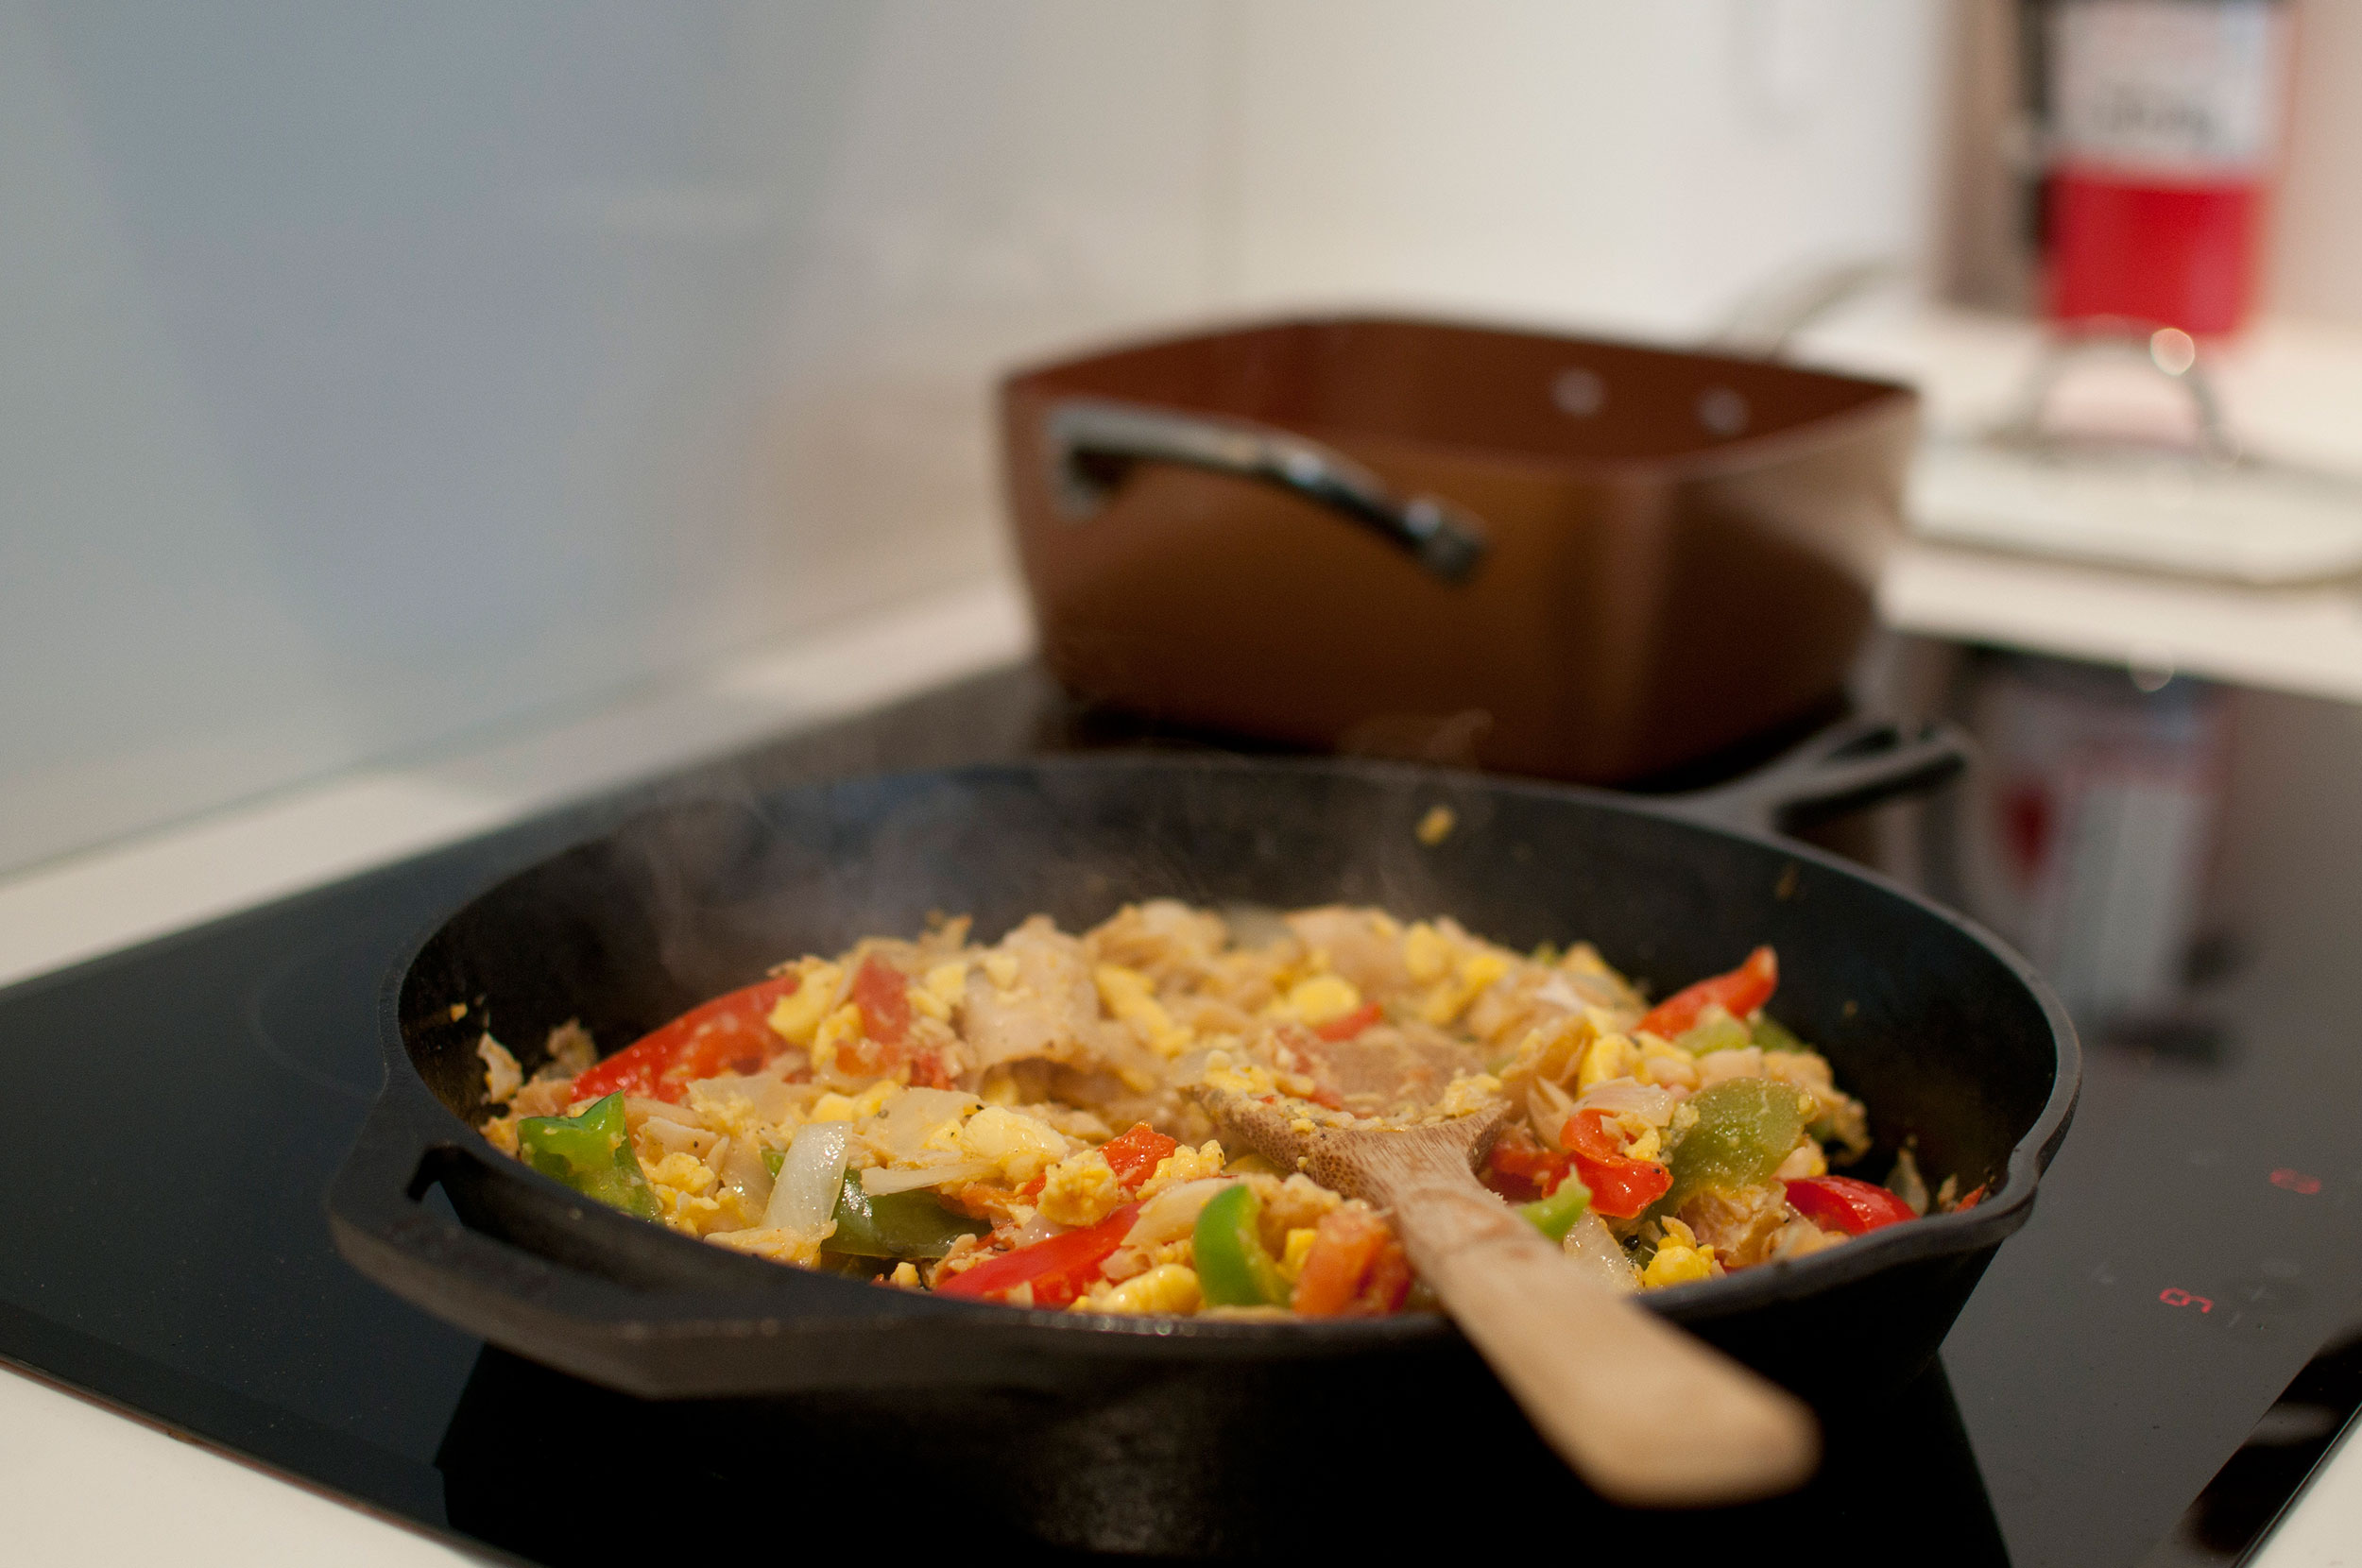 Food cooking in a skillet